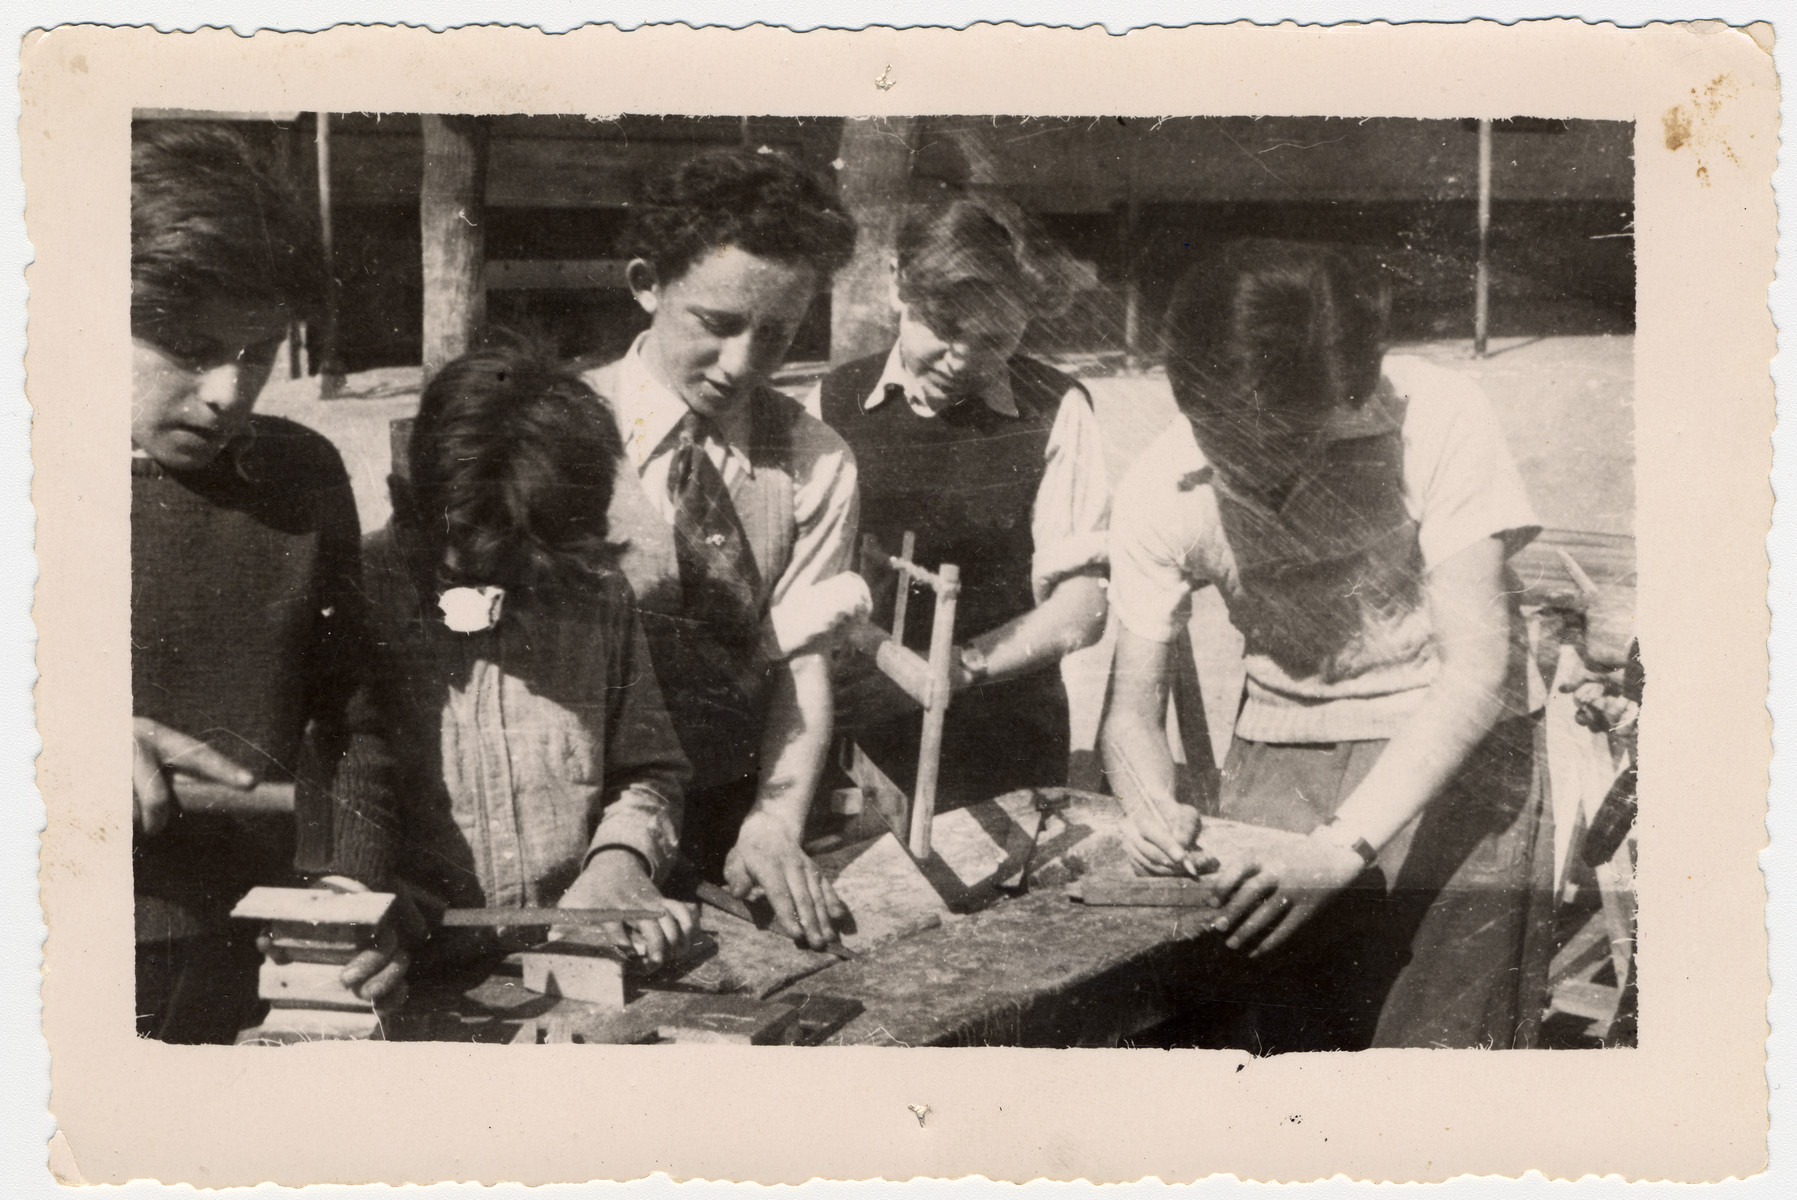 Jewish youth practice woodworking at either the Ambloy or the Taverny children's home.  Among those pictured are Kaliksztajn and Finkelsztajn.